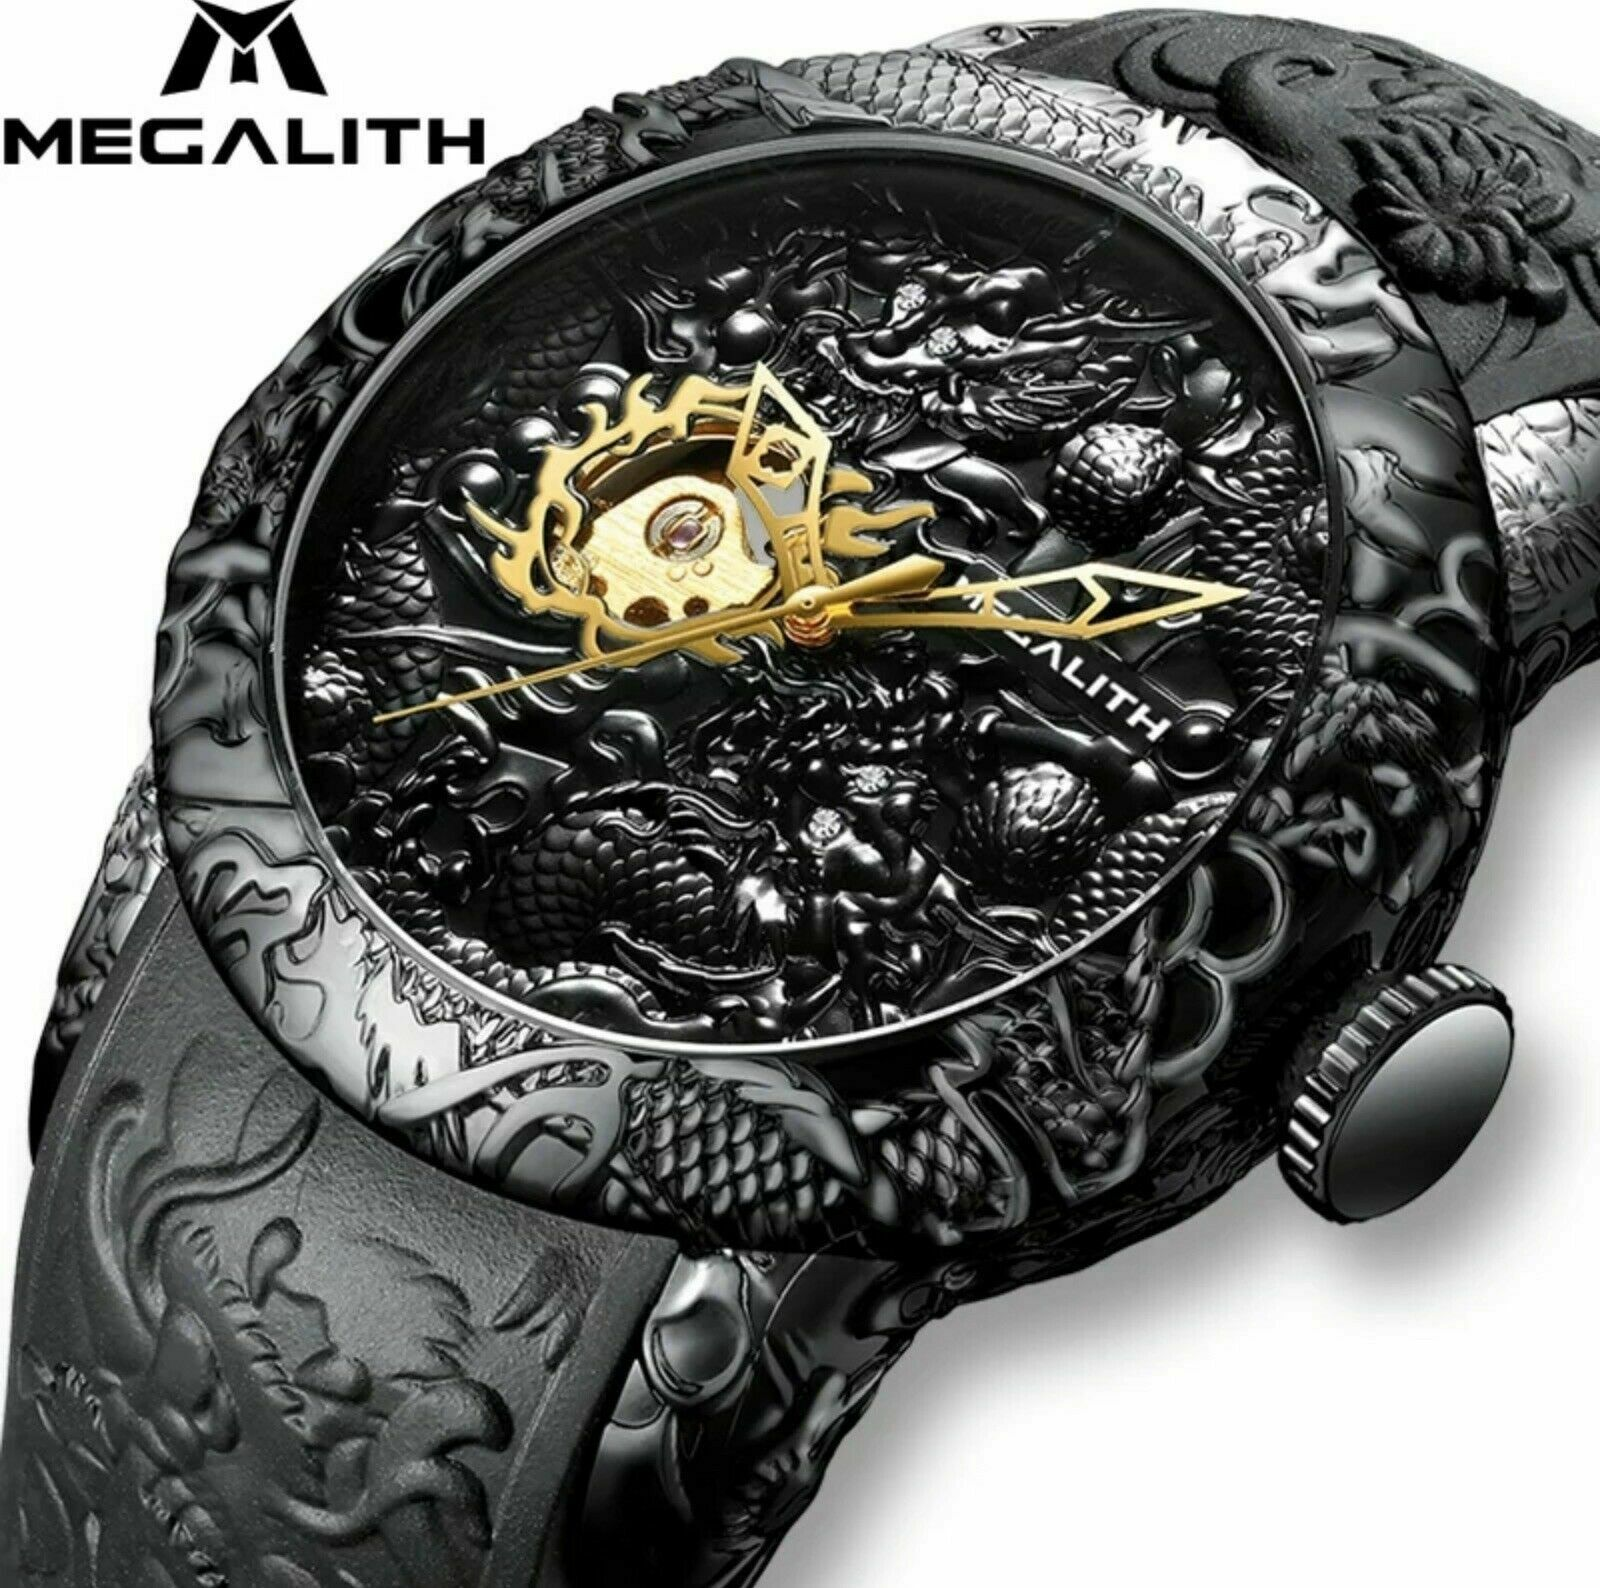 Big 50mm Megalith Automatic Mechanical Gold Dragon Sculpture Watch Luxury Gift